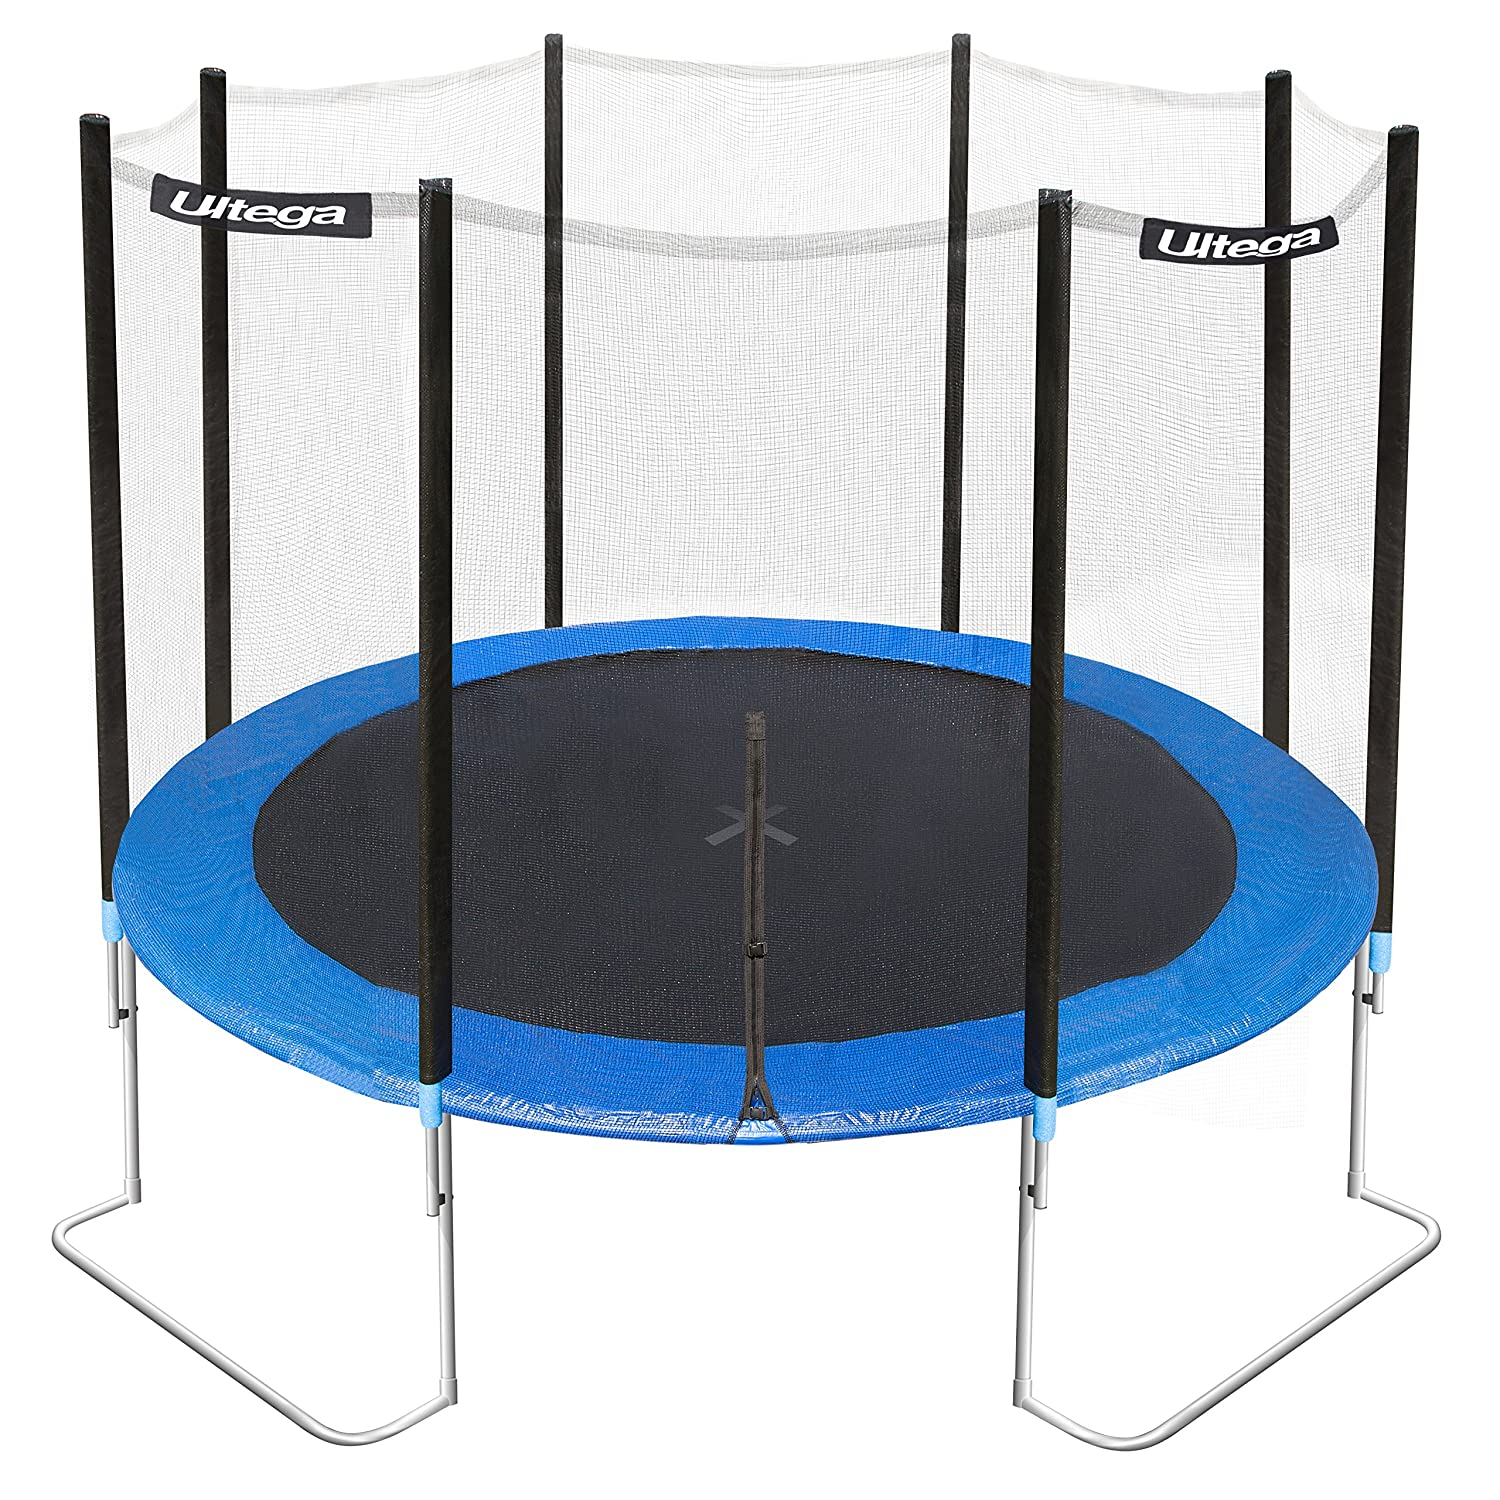 Ultega Small Trampoline Black Friday Deals